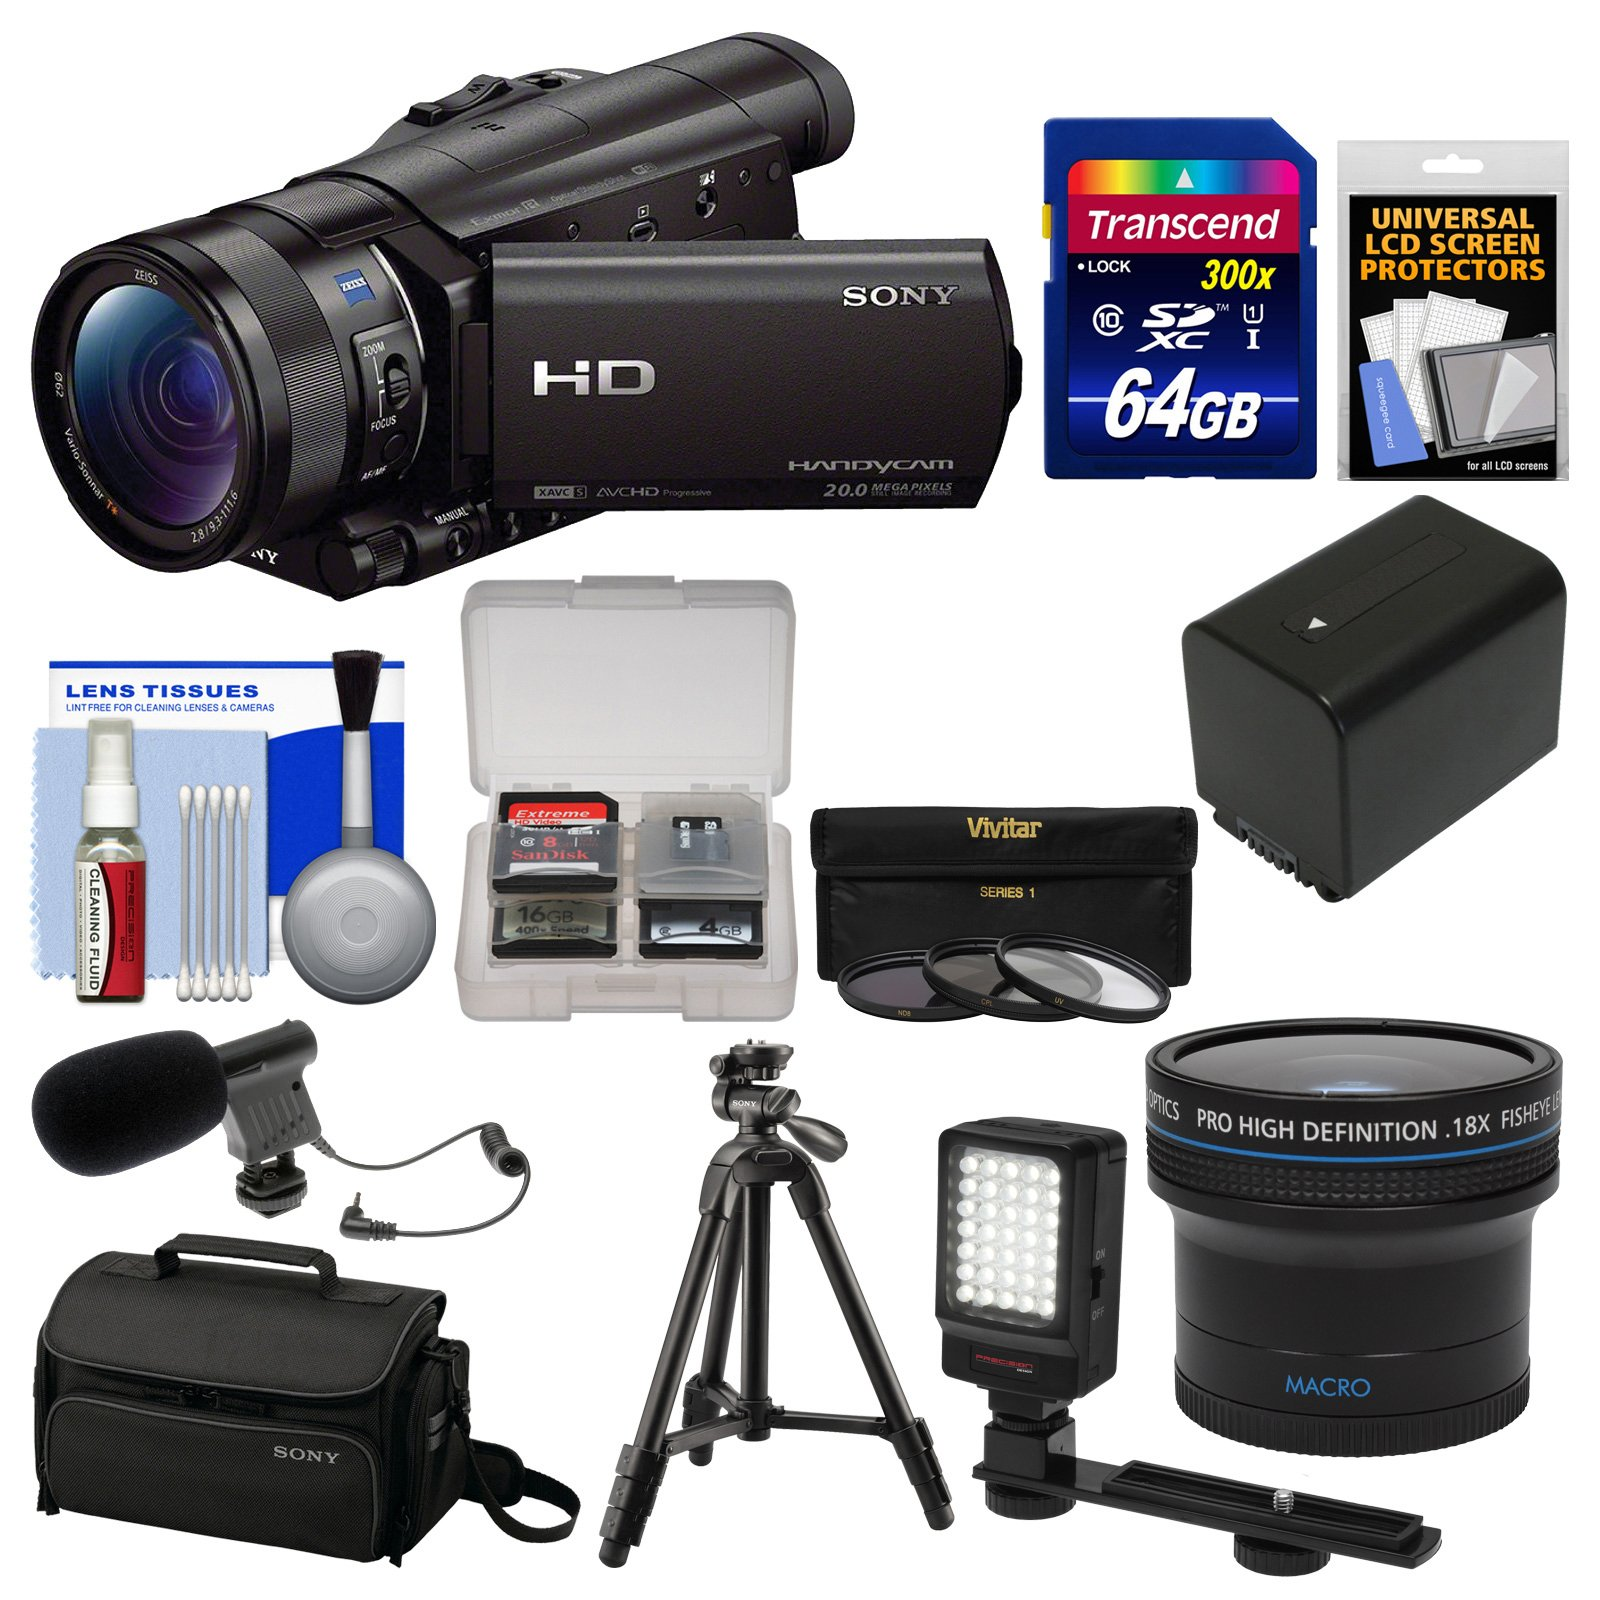 Sony Handycam HDR-CX900 Wi-Fi HD Video Camera Camcorder with Fisheye Lens + 64GB Card + Case + LED Light + Battery + Tripod + Filters Kit